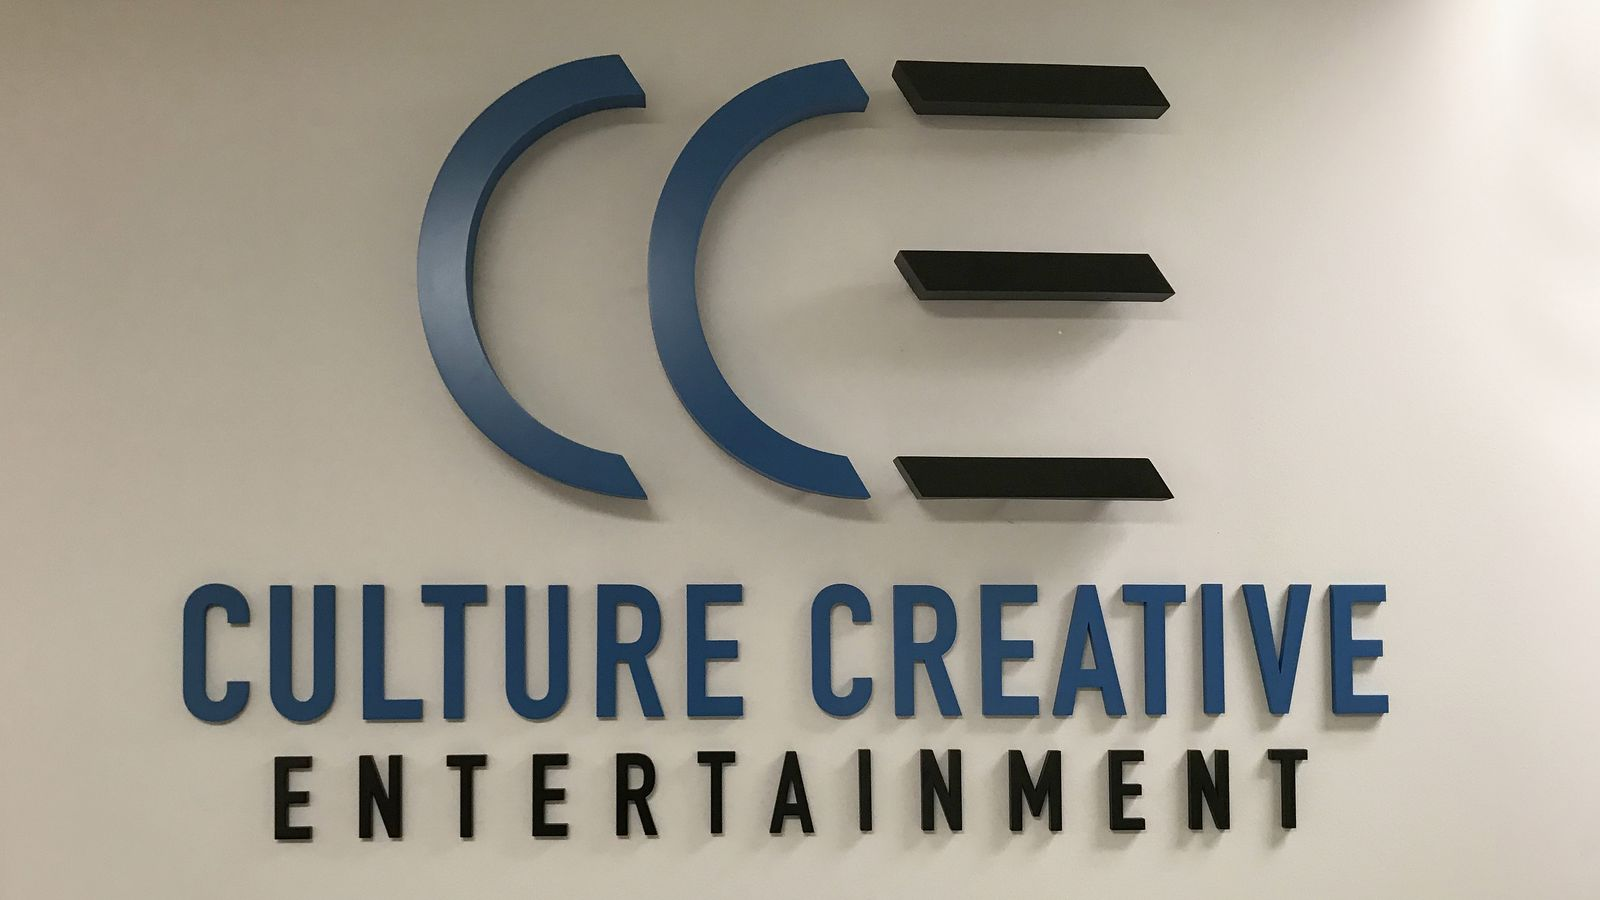 Culture Creative Entertainment backlit 3d sign letters made of aluminum and acrylic